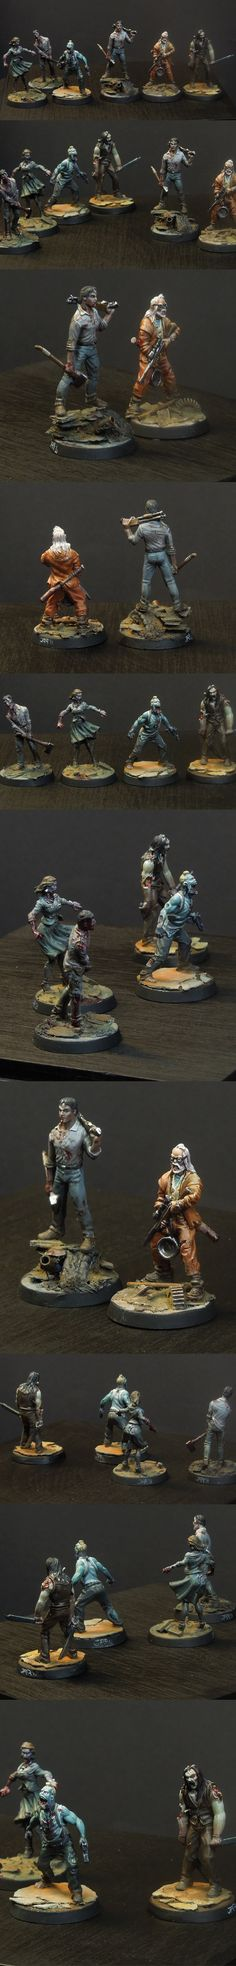 Zombicide - 4 Zombies, 2 Heroes